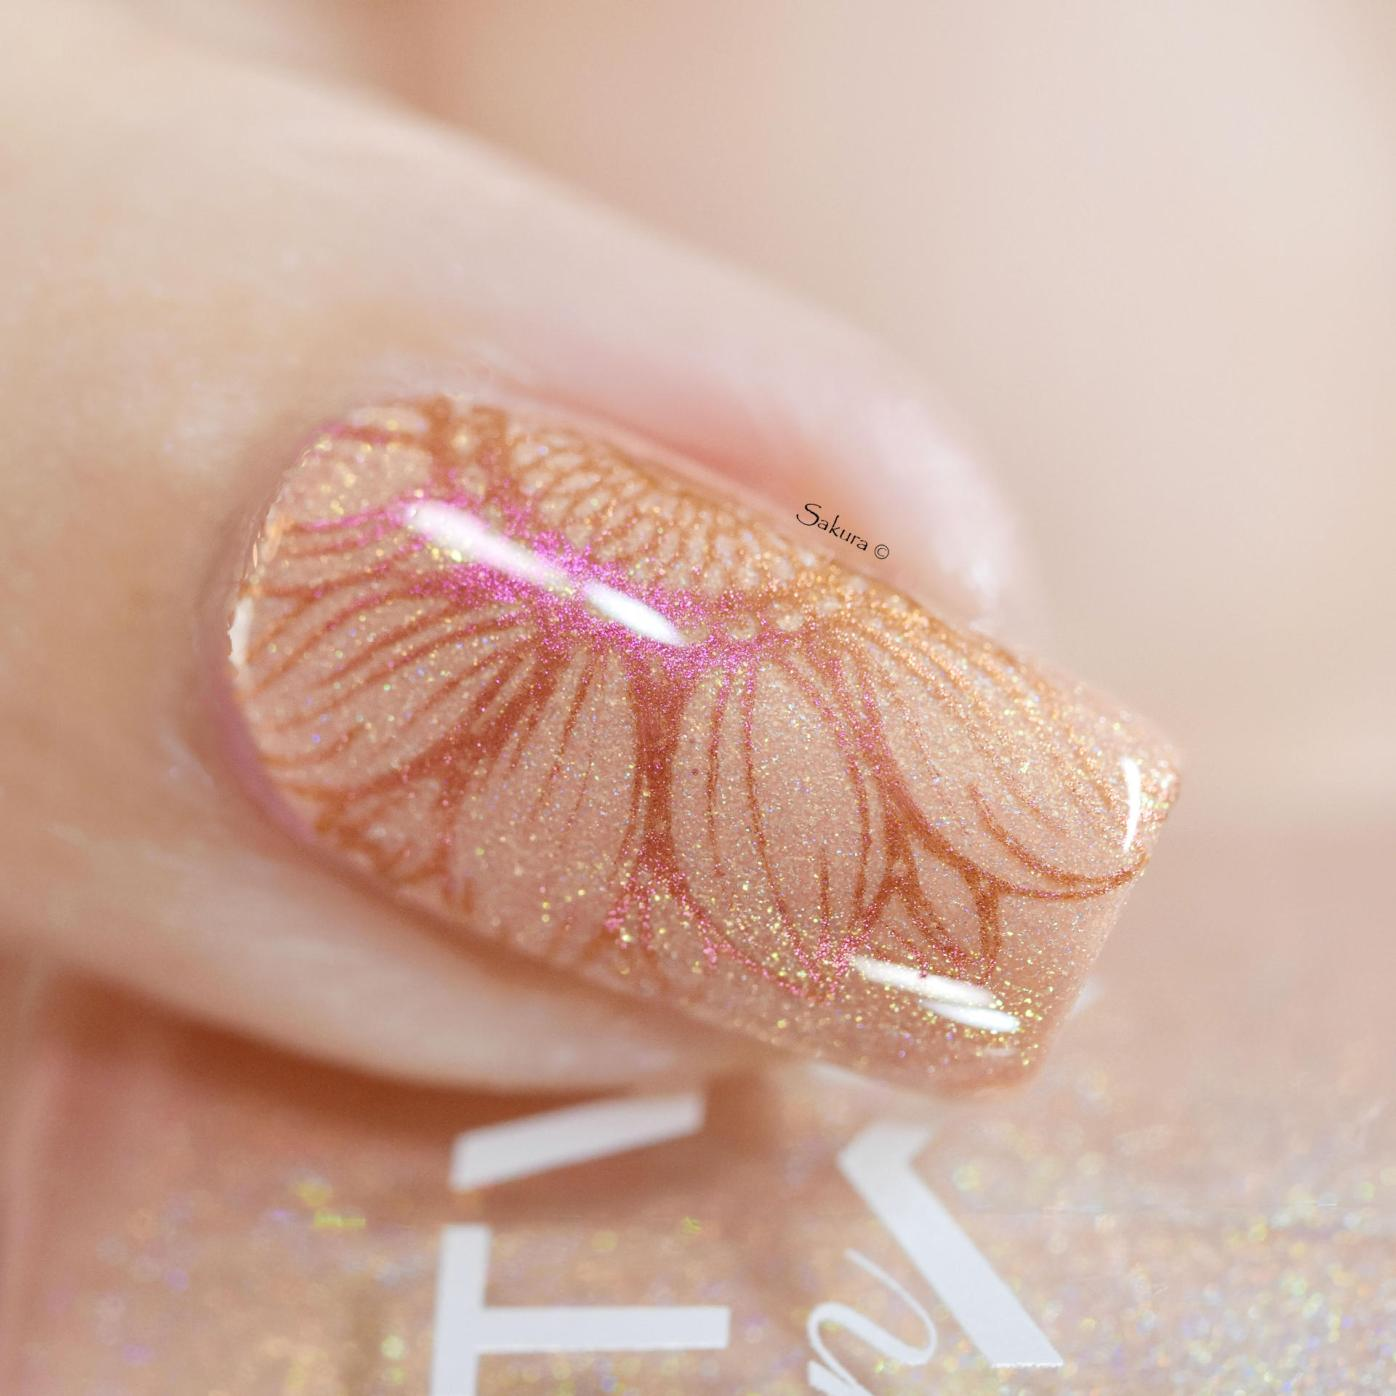 NAIL ART SOLAIRE 2